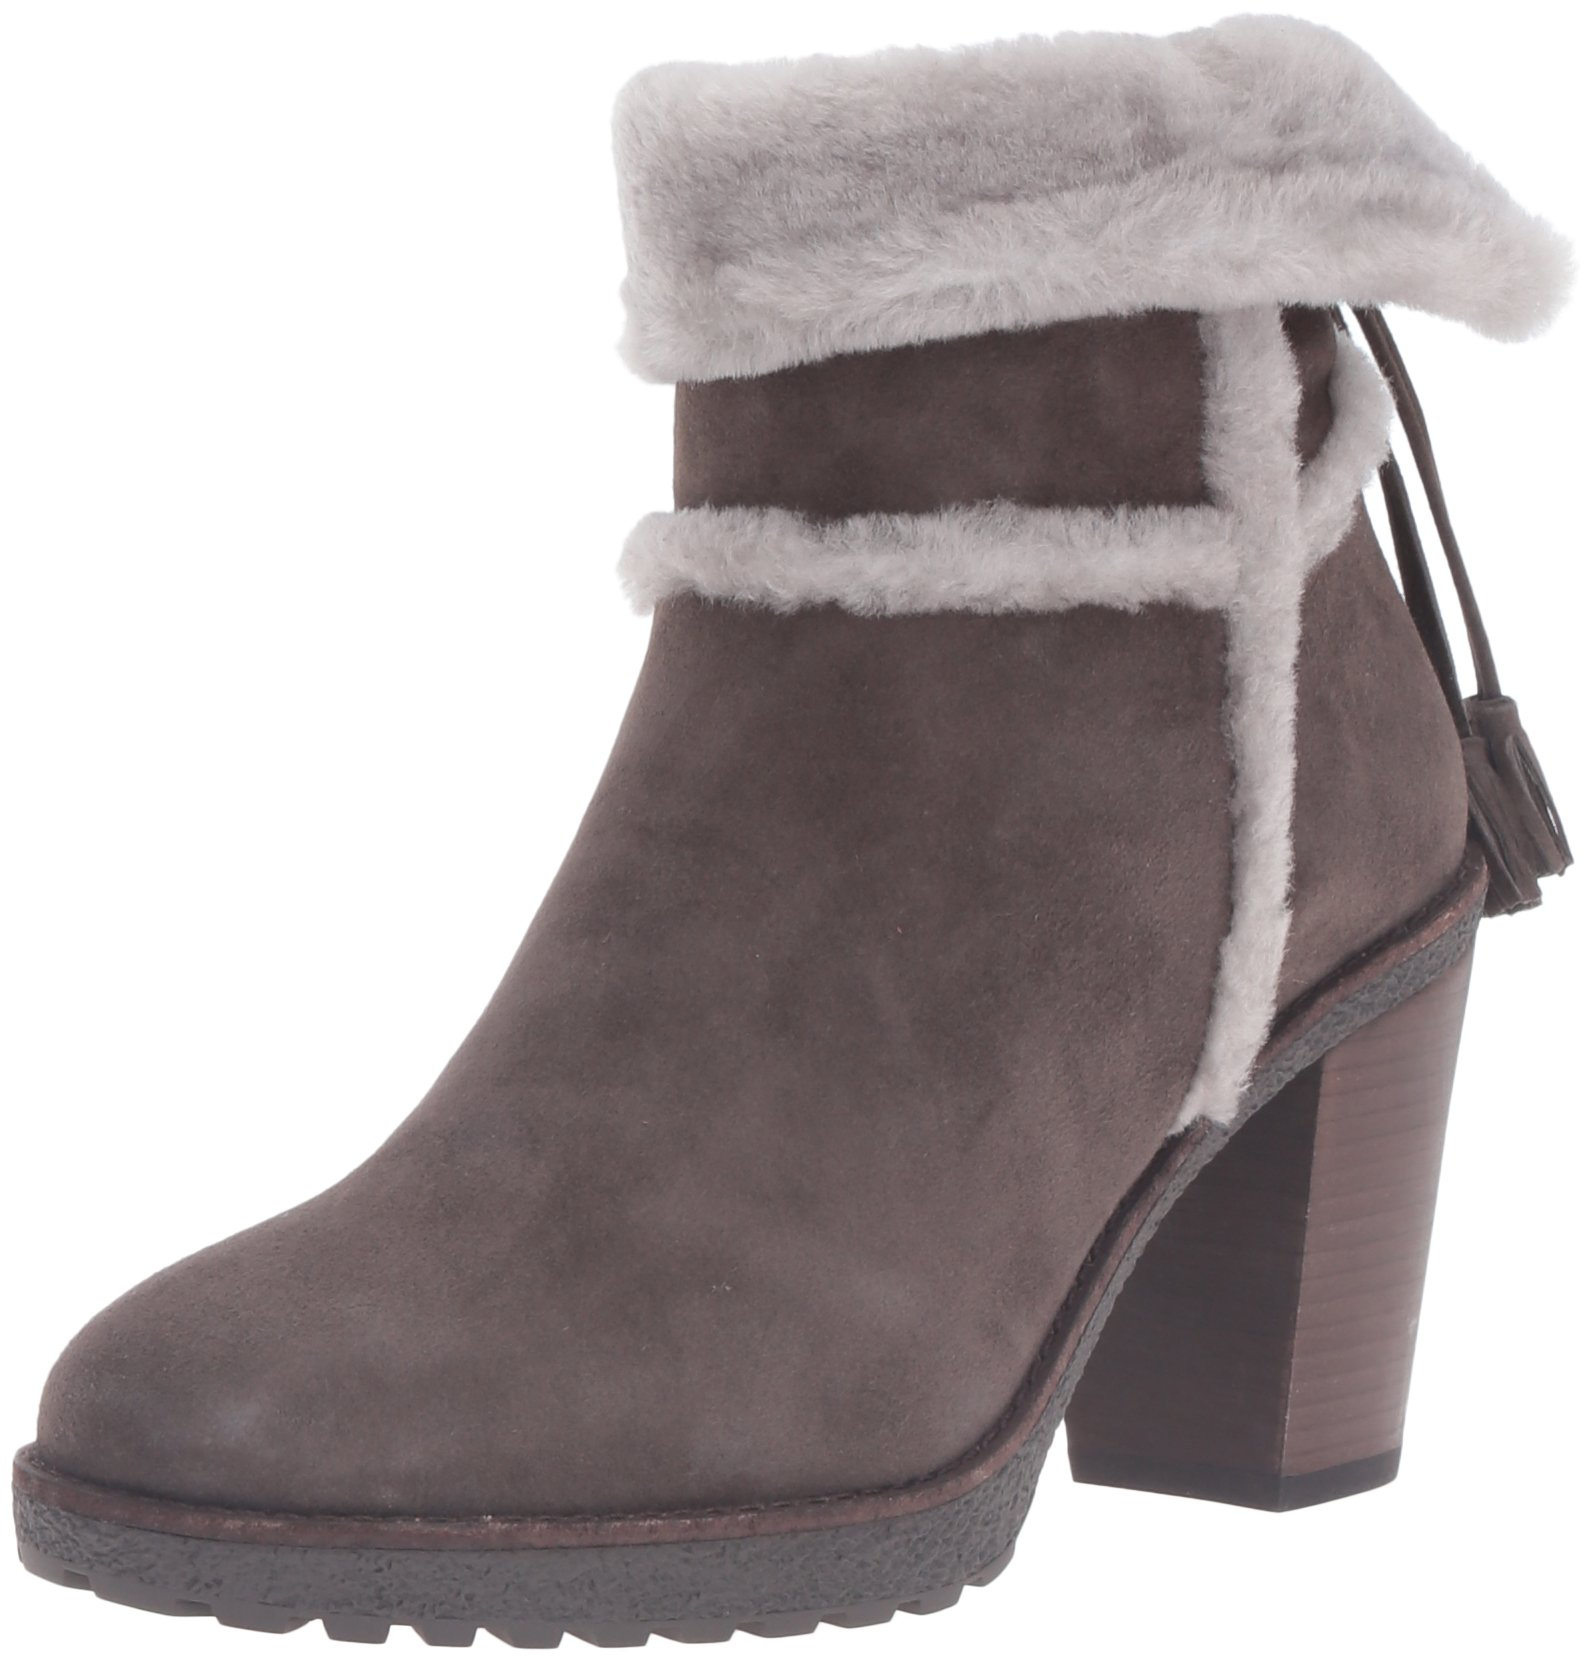 FRYE Women's Jen Shearling Short Winter Boot, Smoke, 7.5 M US